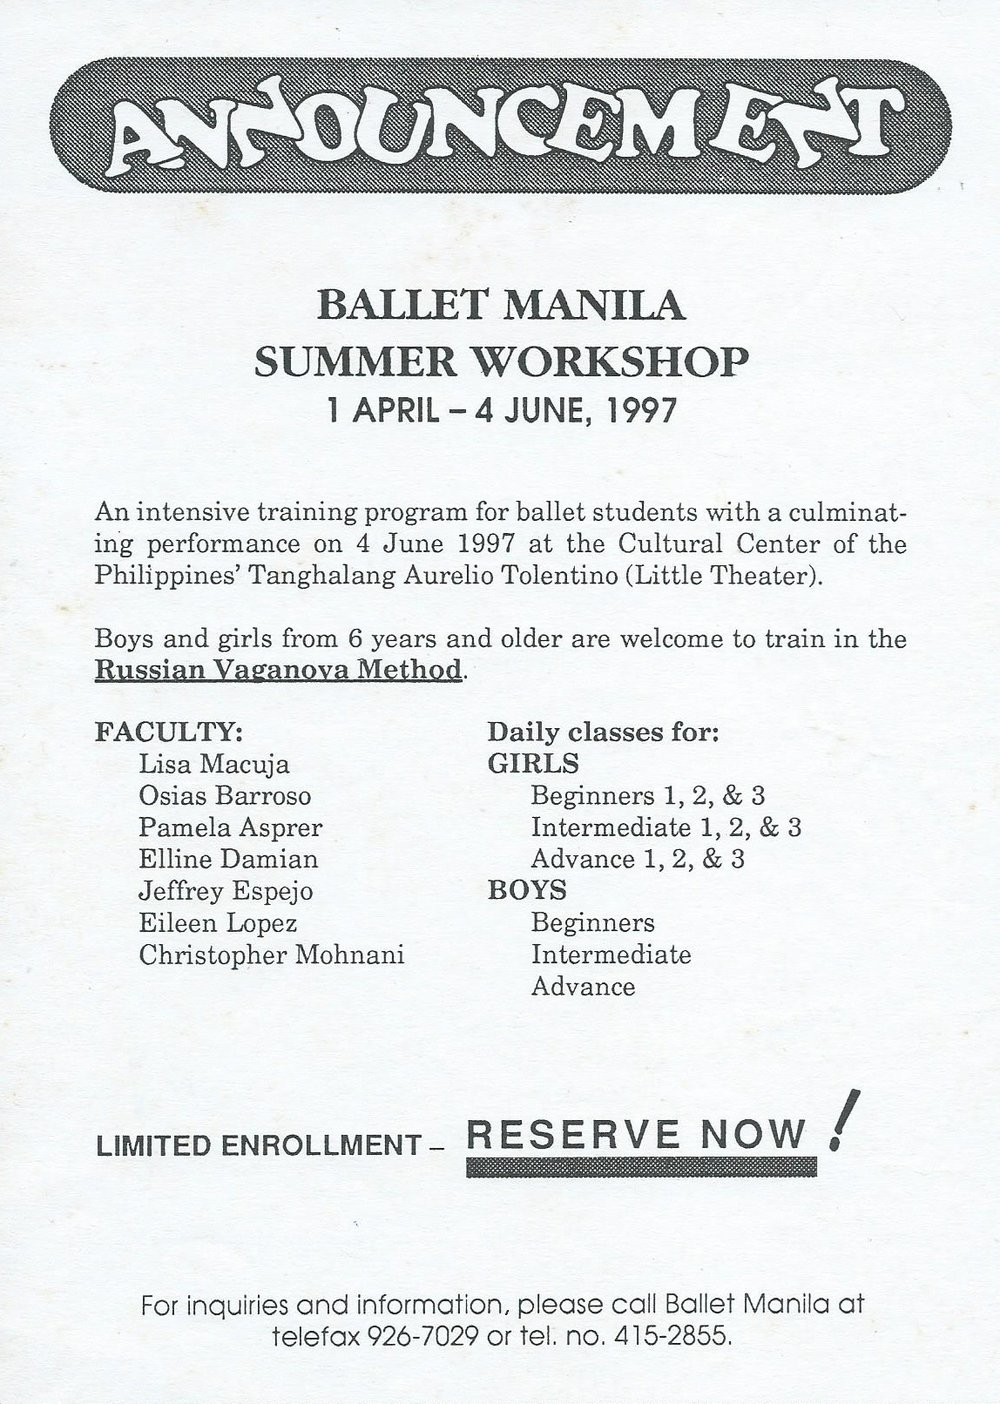 Leaflet for Ballet Manila's first summer workshop underscores its offered training in the Russian Vaganova Method. Image courtesy of the Ballet Manila Archives